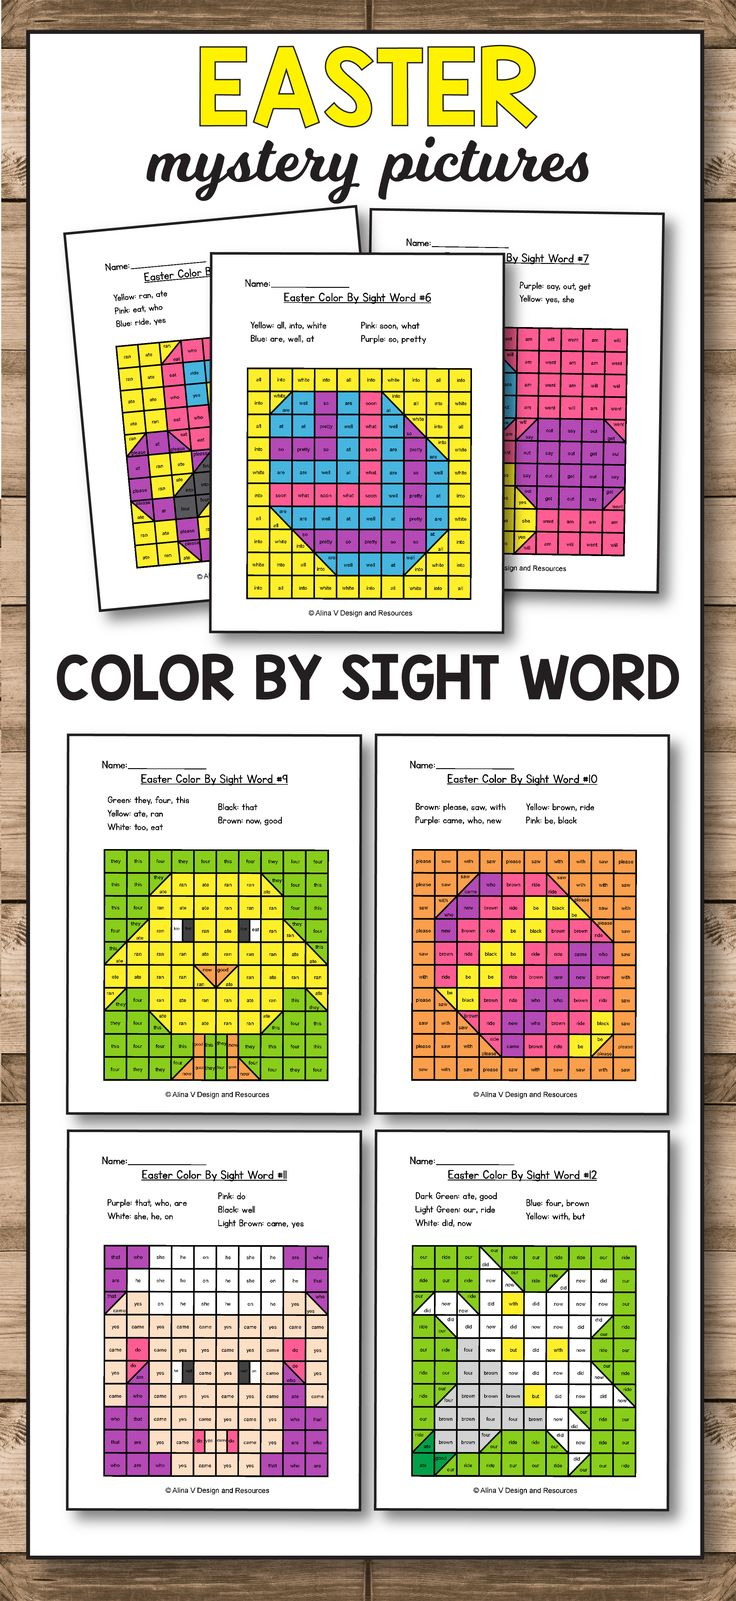 Easter Color By Sight Word - Easter Activities for Kindergarten Printables is fun with these preschool, kindergarten and first grade color by sight word games. These worksheets are a great addition to your math and literacy centers. Your students will enjoy these color by sight word games that you can add to morning work and even homework.  #easter #activities #coloring #pages #sightwords #kindergarten #1stgrade students #literacycenters #commoncores